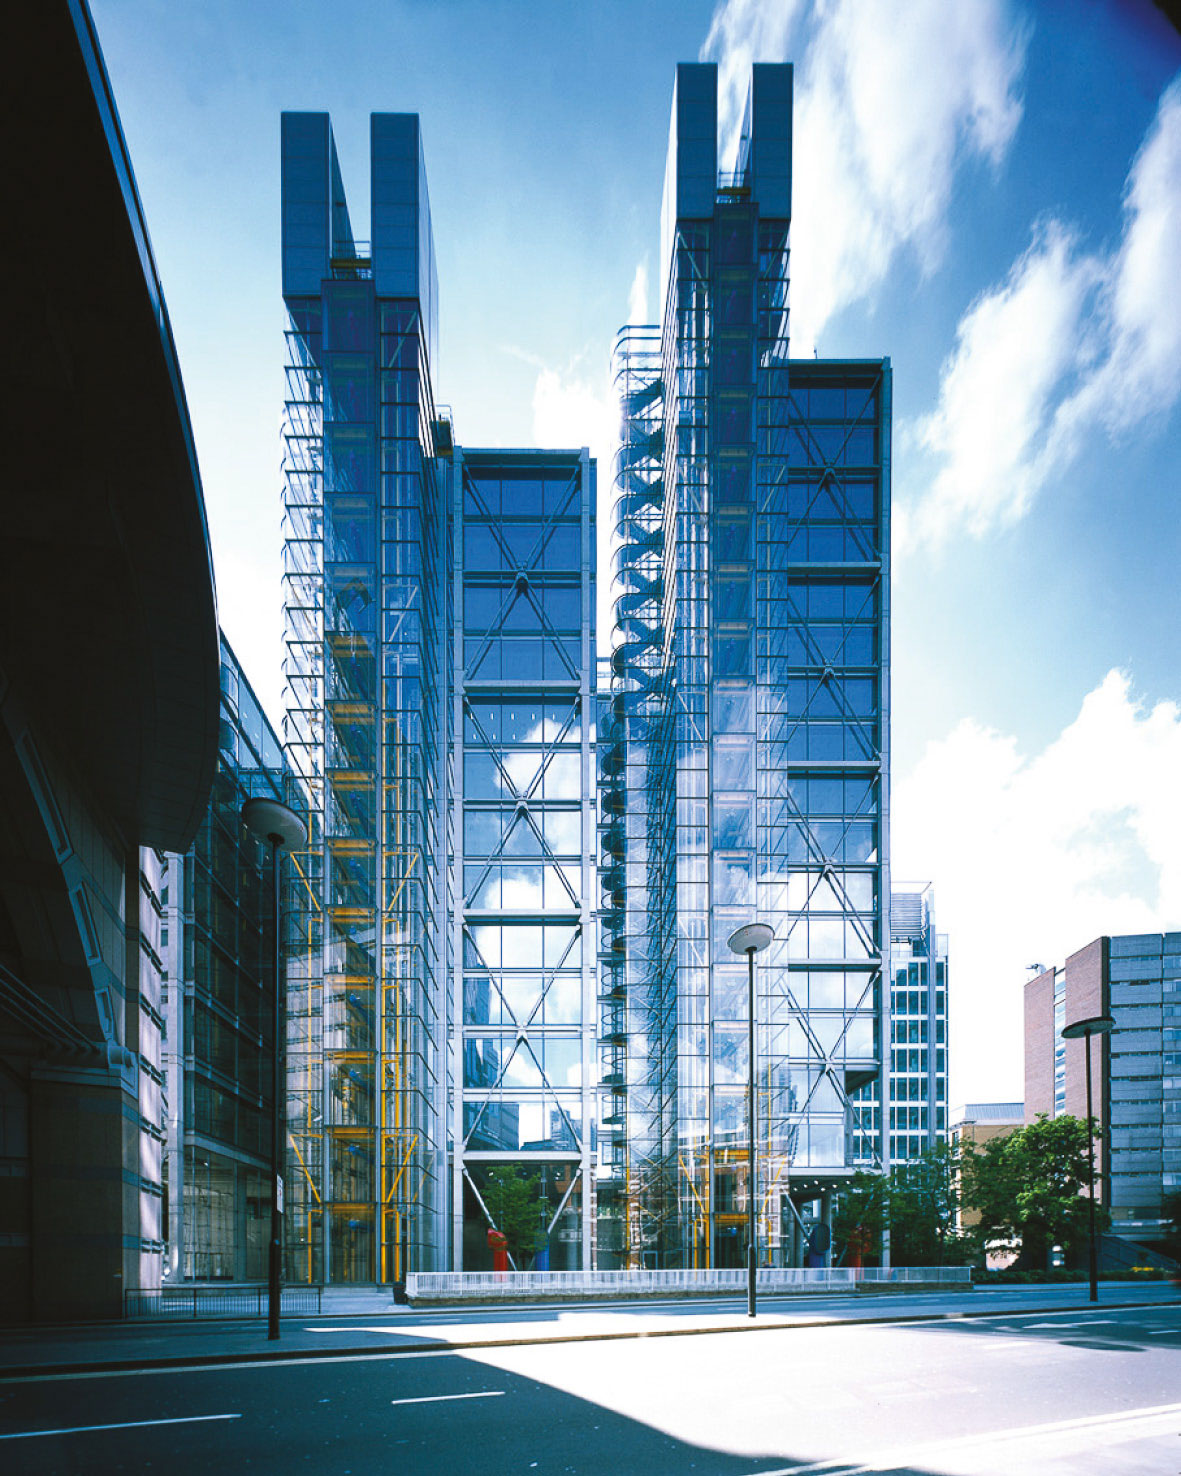 Stuart Forbes worked on 88 Wood Street whilst at Richard Rogers Partnership. Commissioned for Daiwa Europe Properties the project sits over a crucial telephone exchange for the City of London.